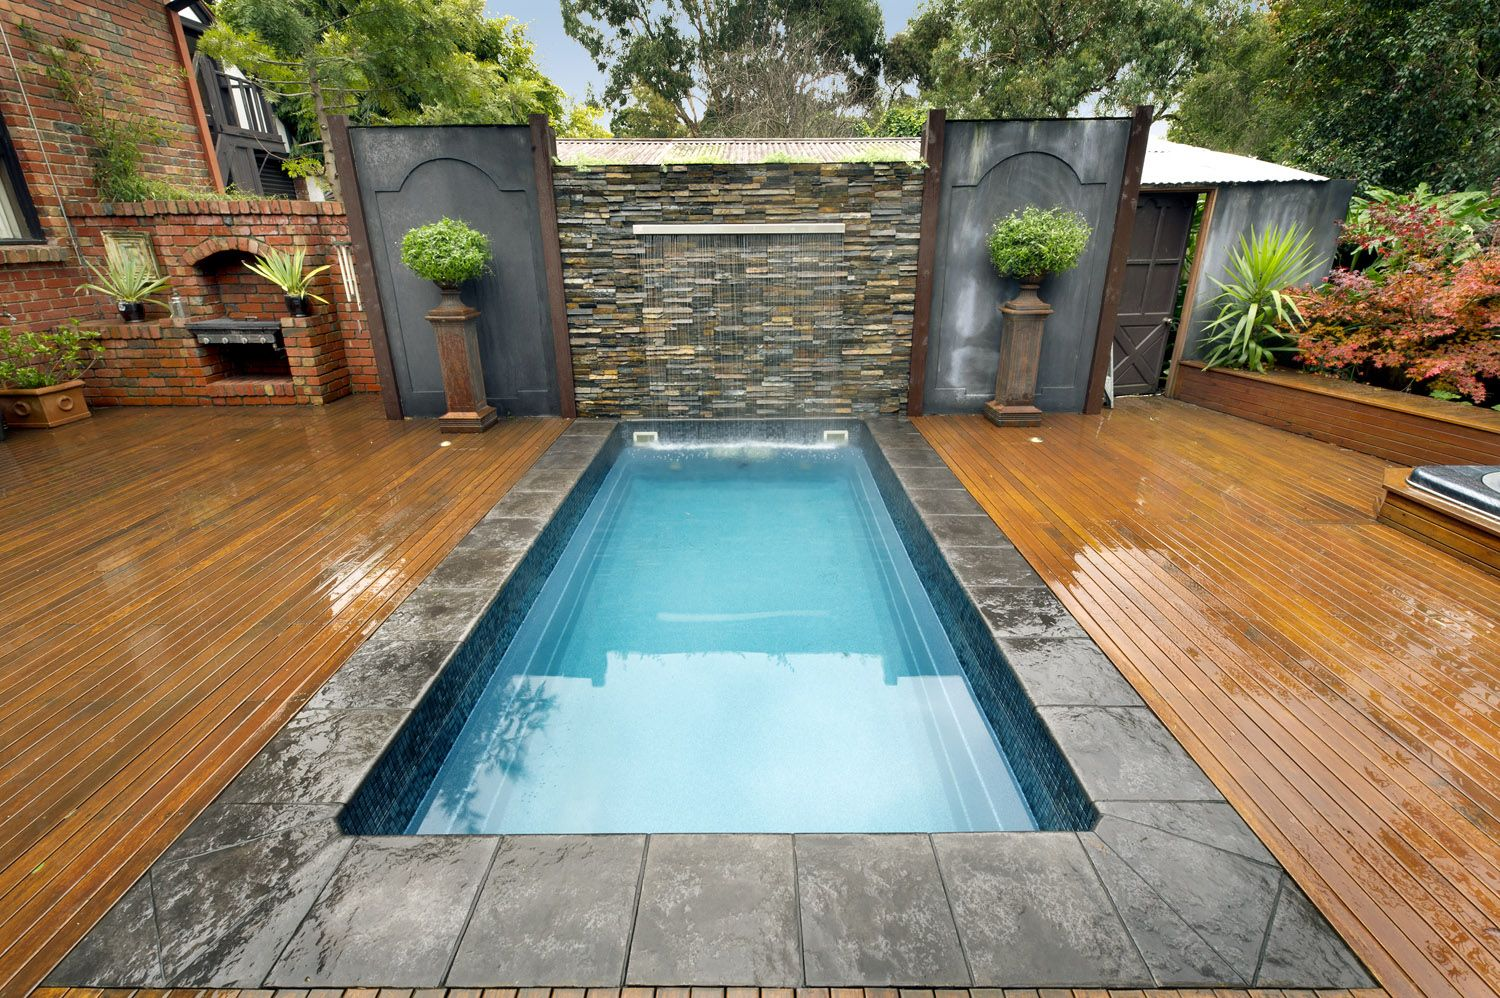 Mural Of Plunge Pool Cost Estimation Small Backyard Pools Small